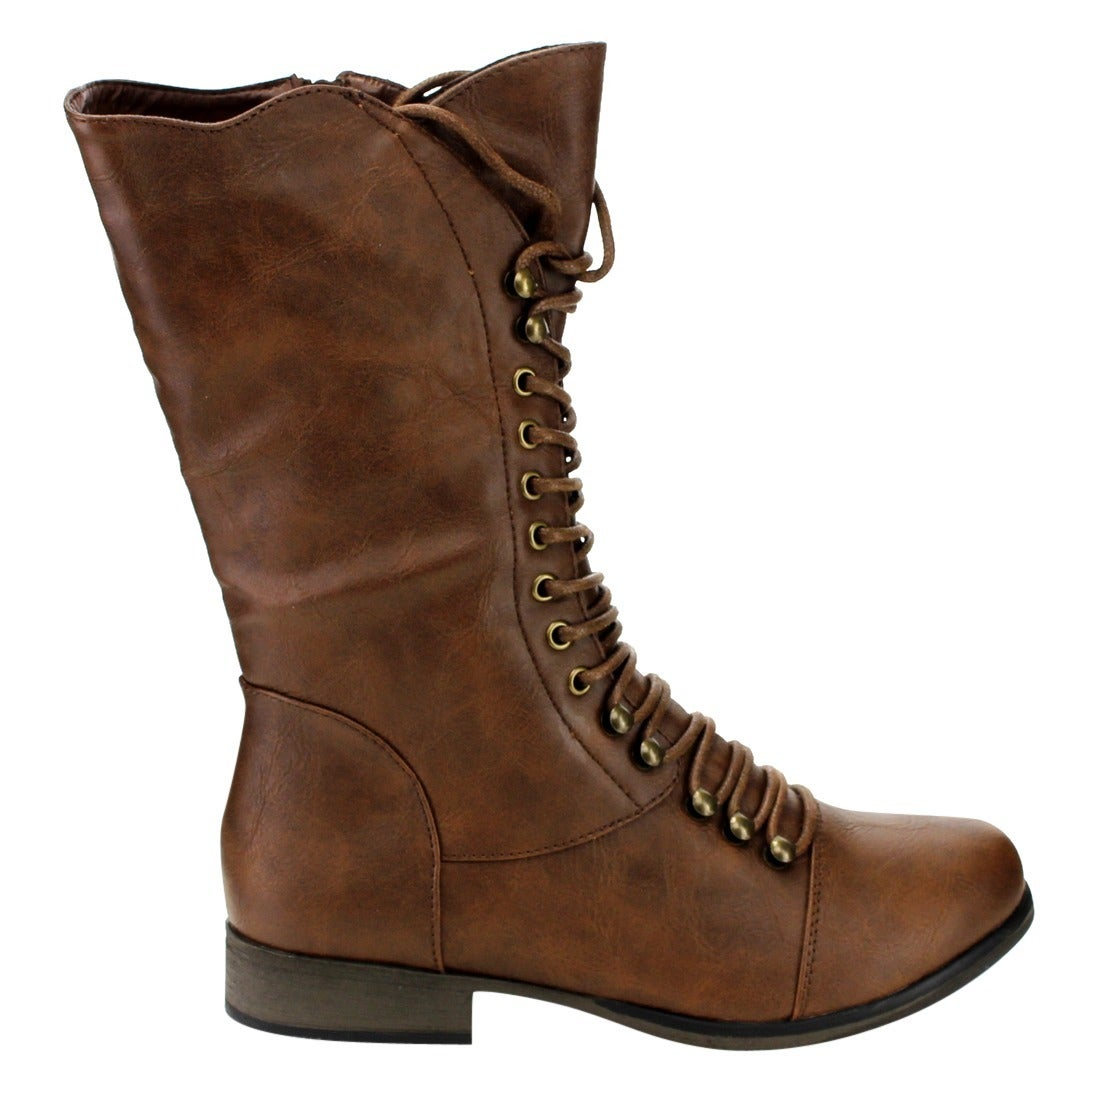 e99417628f3 Forever GE09 Women's Mid-calf Lace-up Low-heel Zip-up Combat Boots